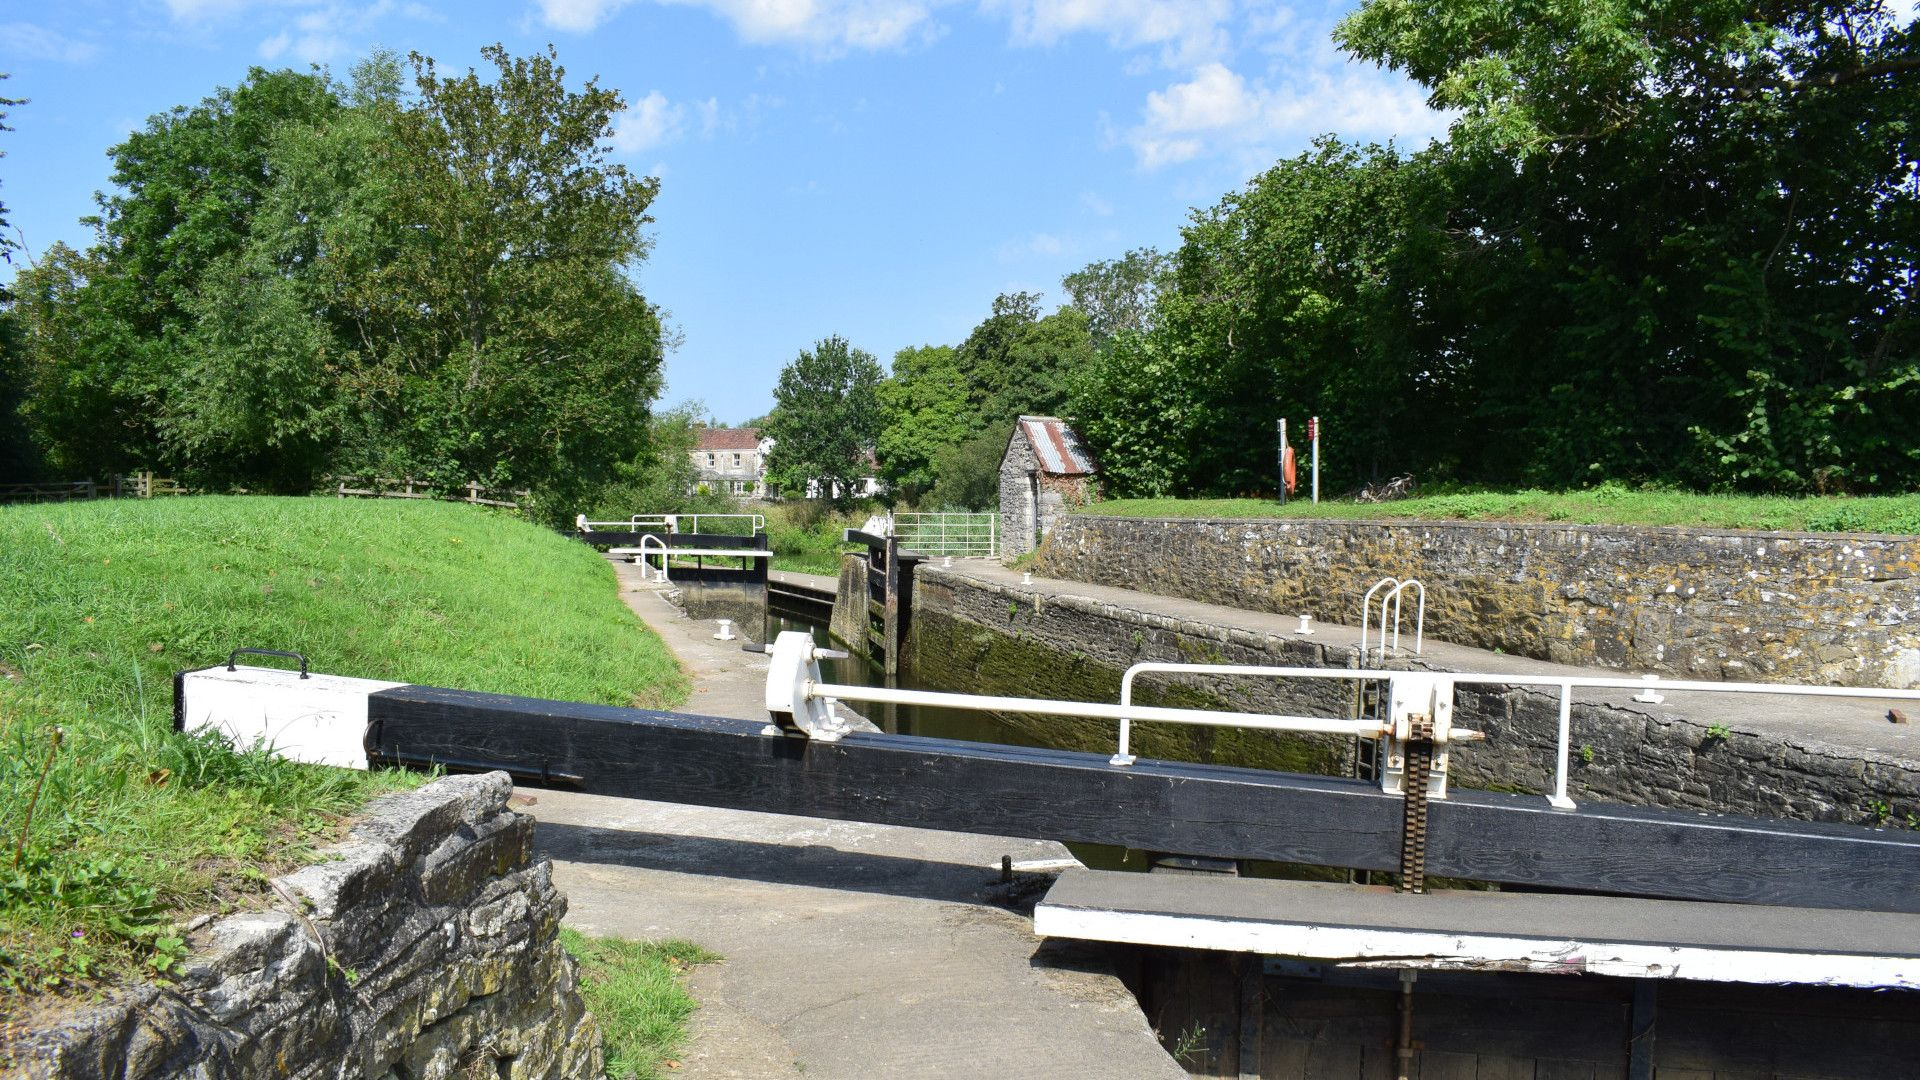 The lock on the River Avon, Dovecote at Avon Farm, Bolthole Retreats